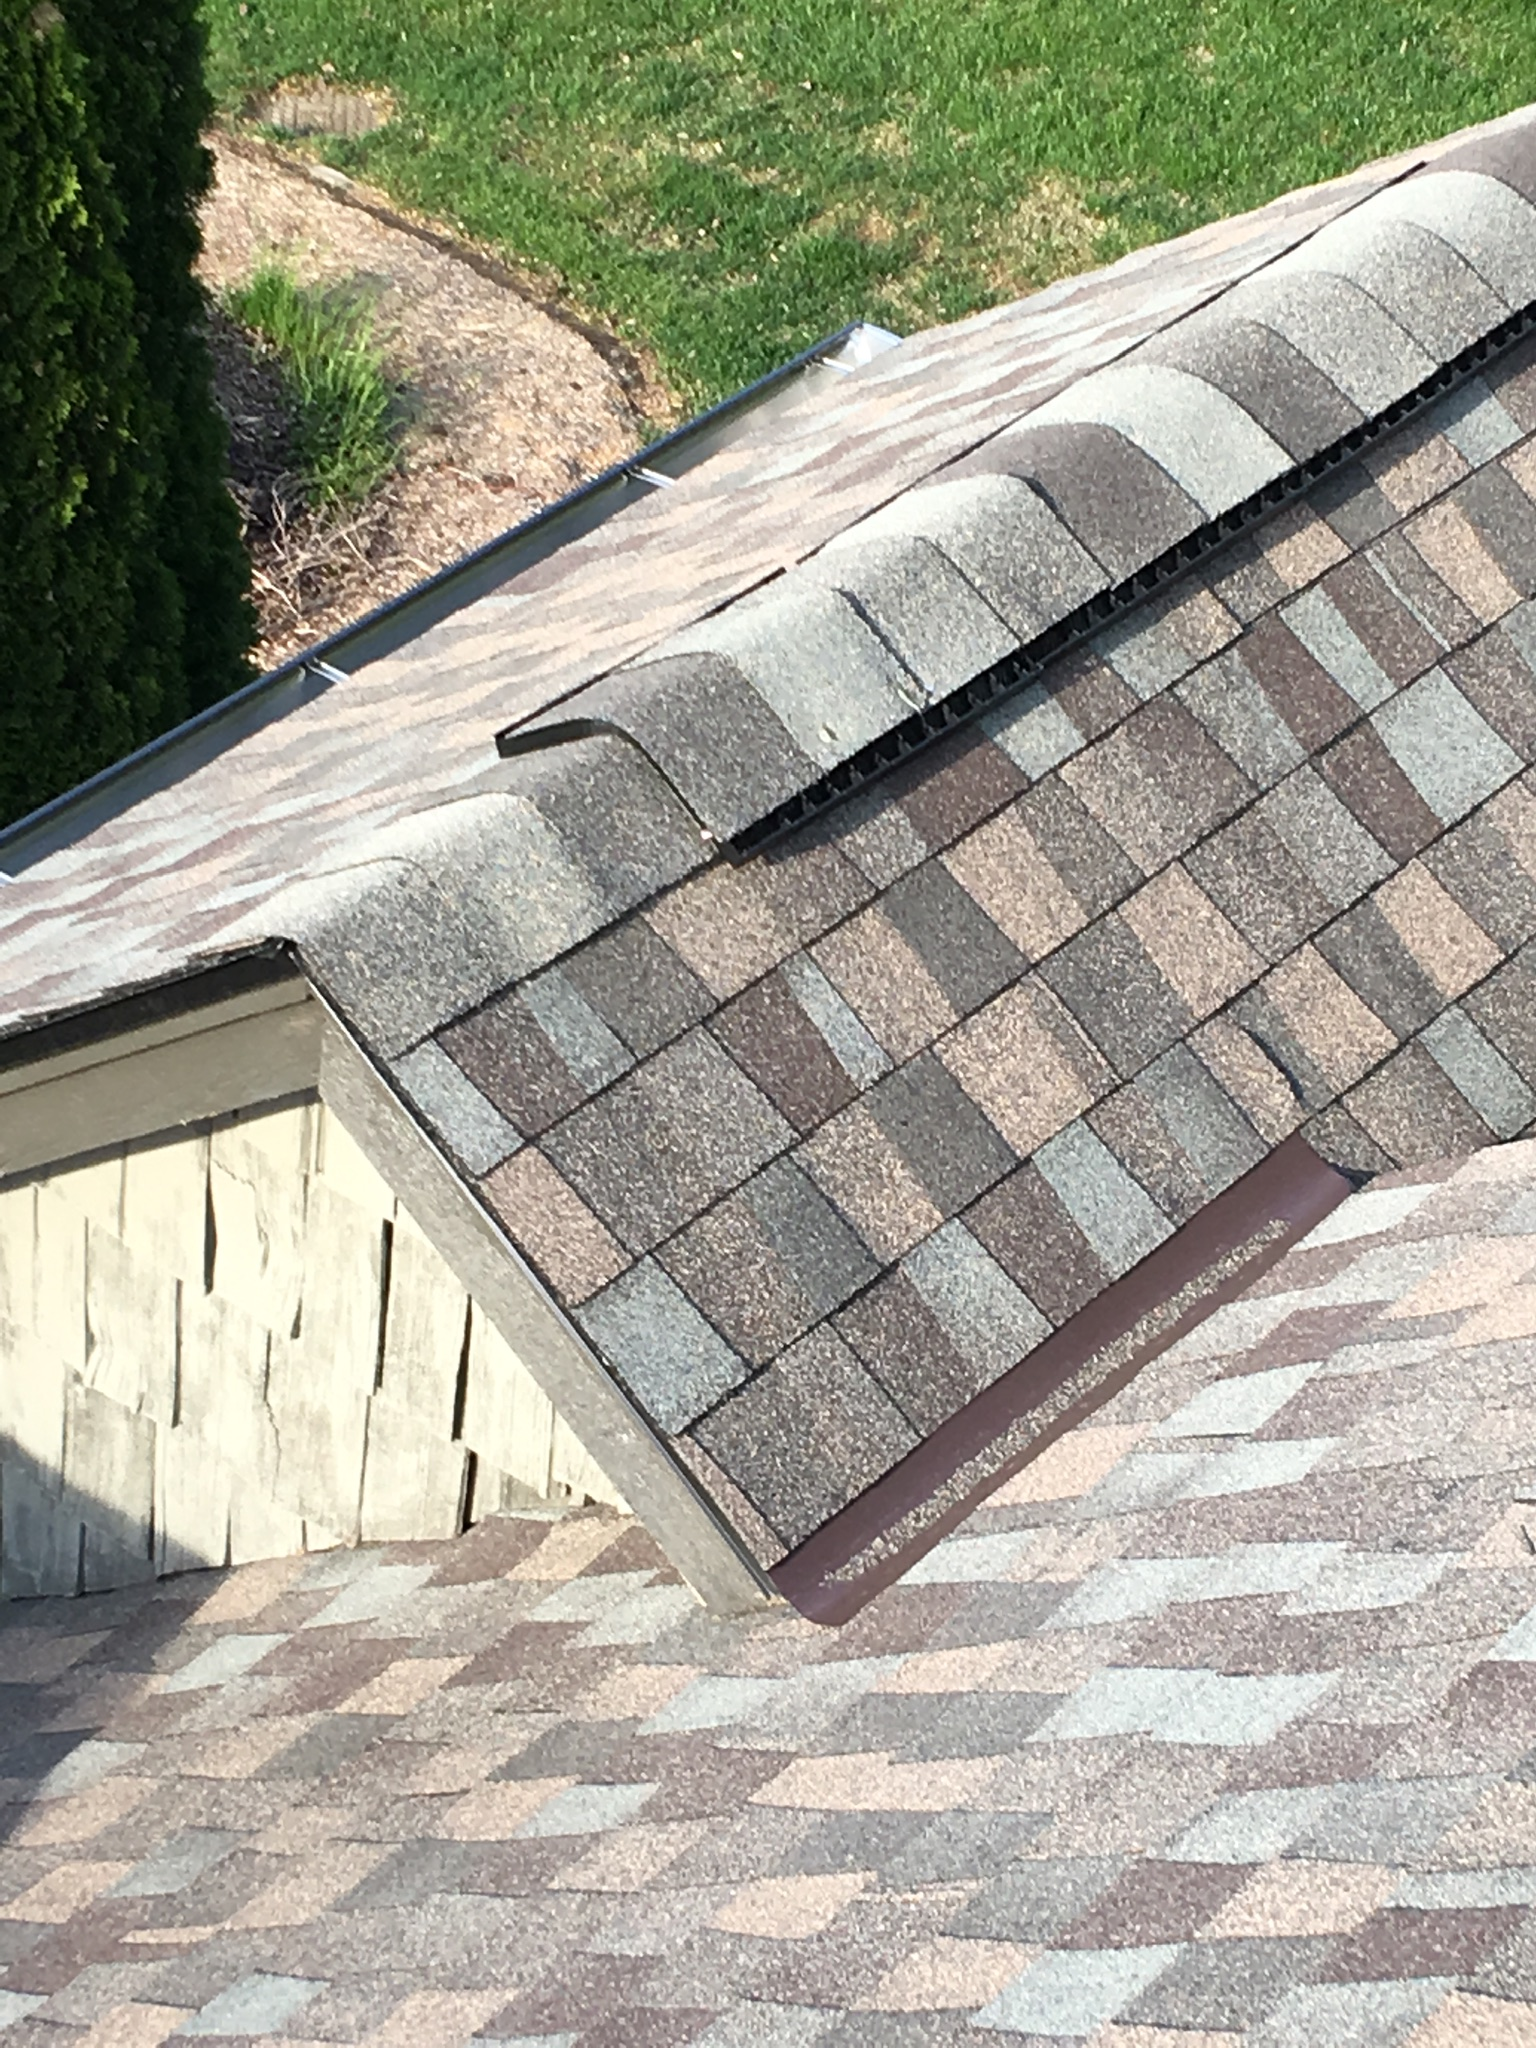 This is the ridge of the roof with ridge cap shingles.